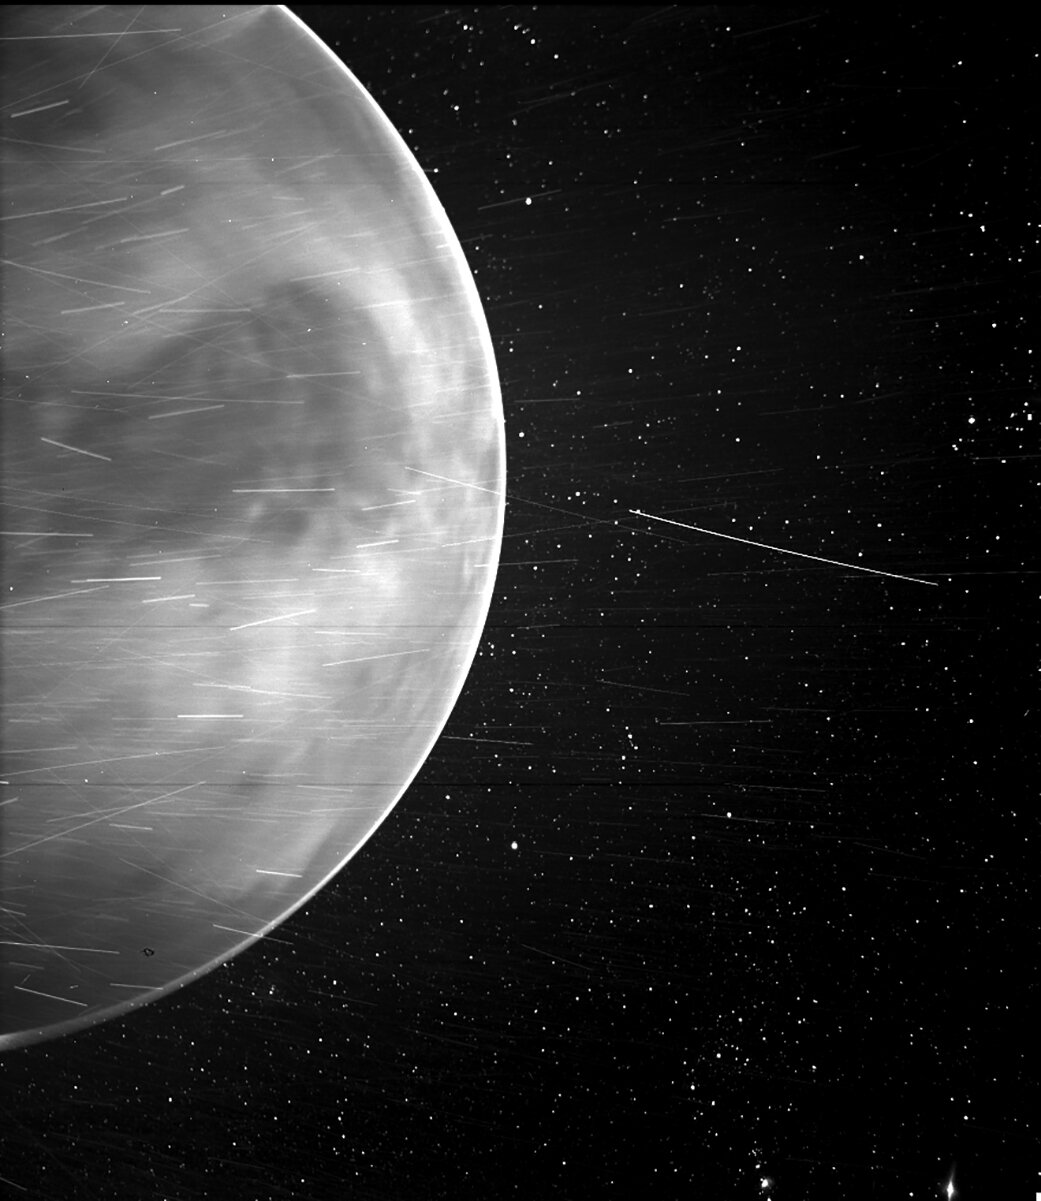 Parker discovers natural radio emission in Venus' atmosphere